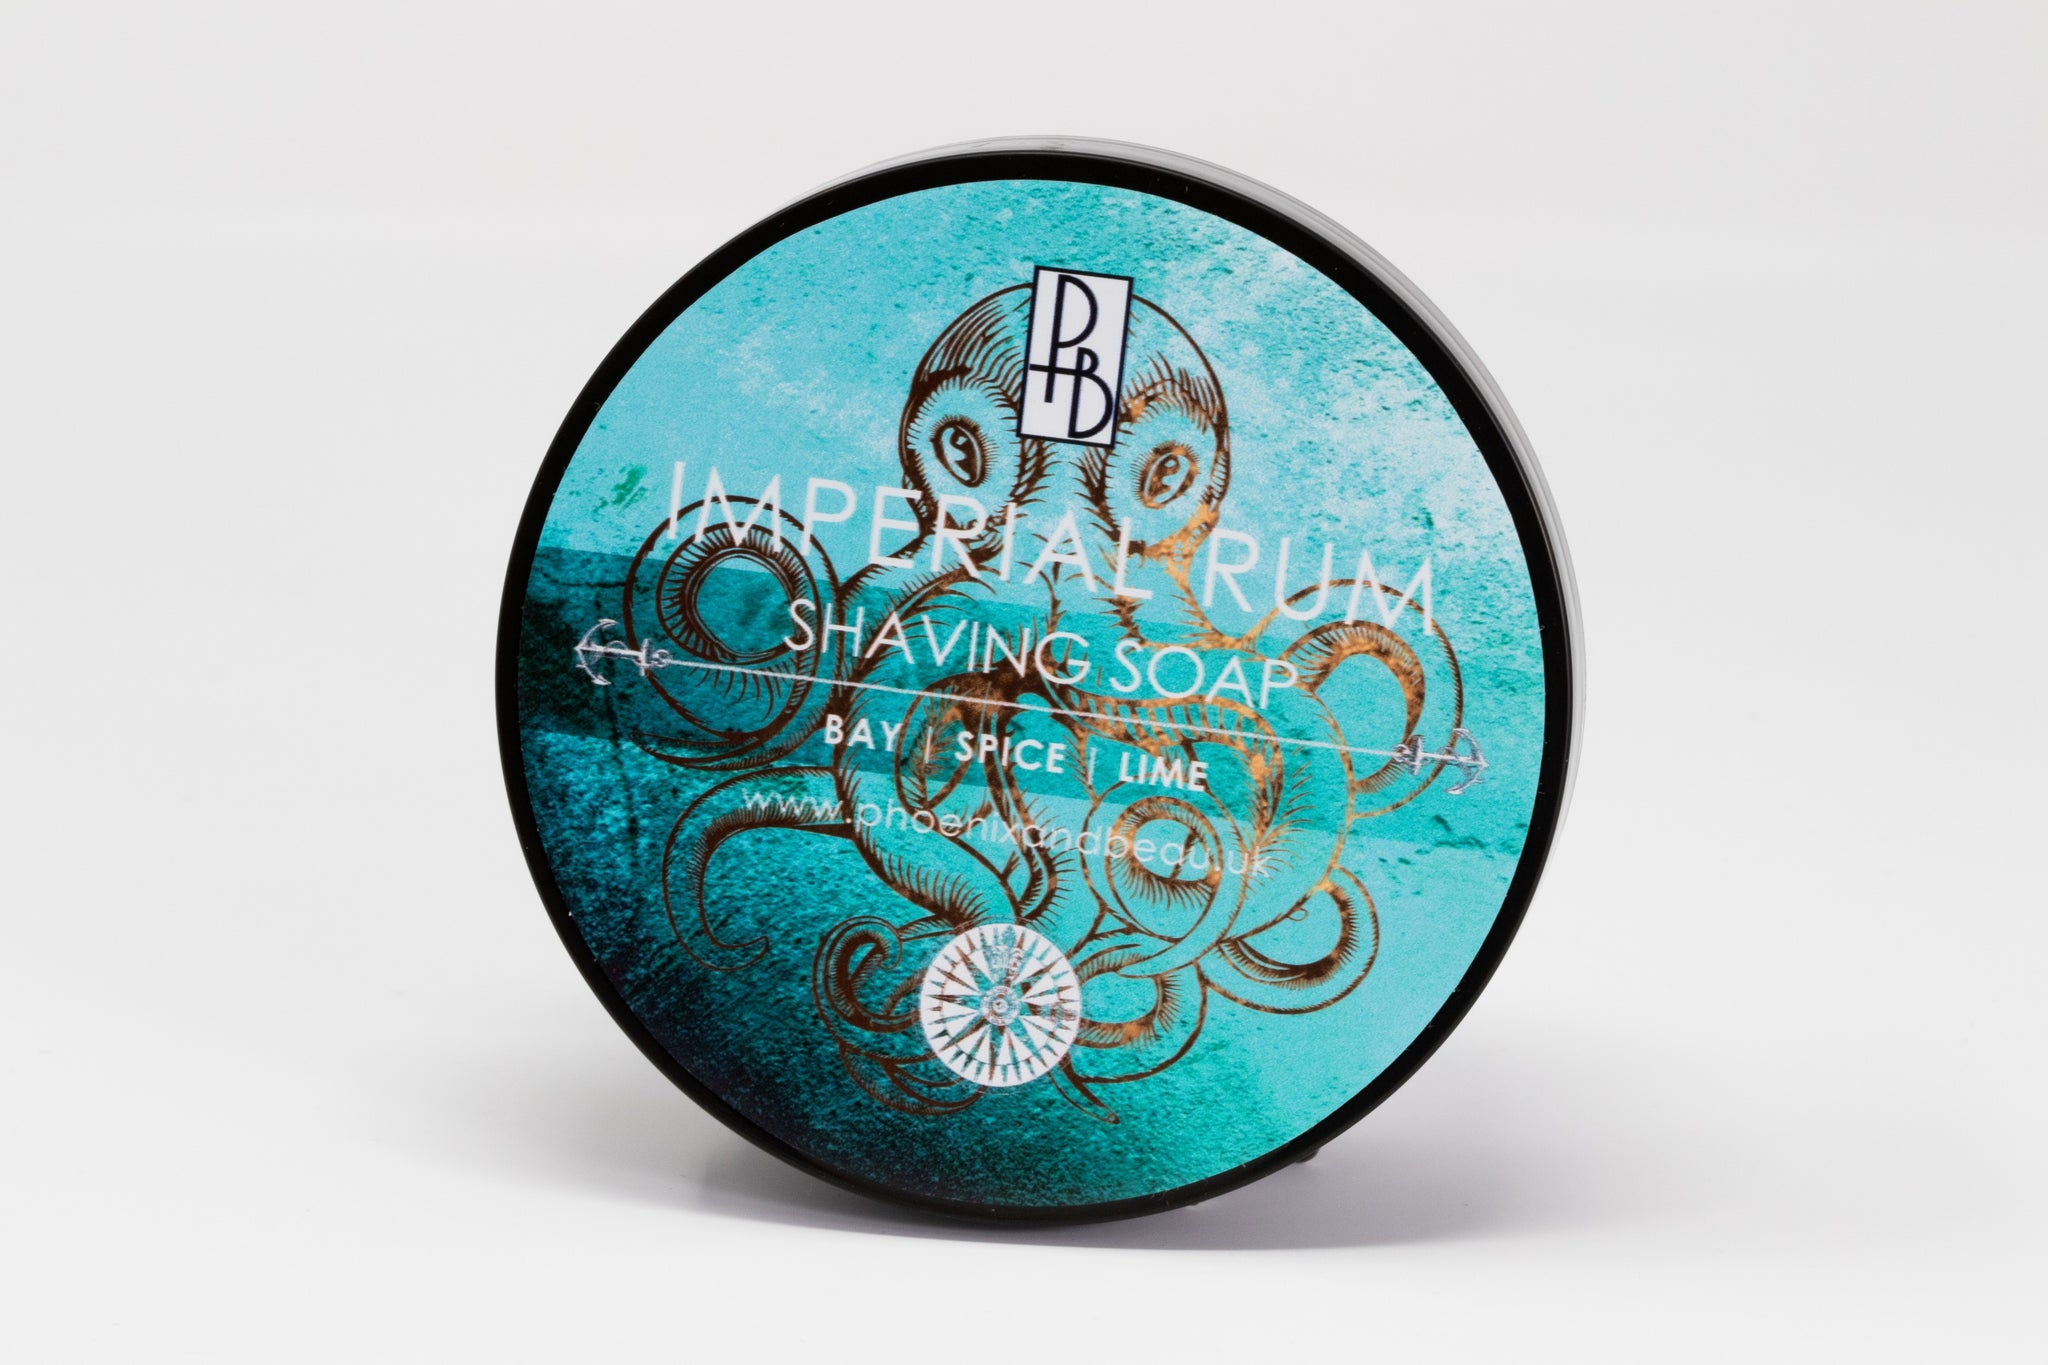 Phoenix & Beau 'Imperial Rum' Luxury Tallow Shaving Soap